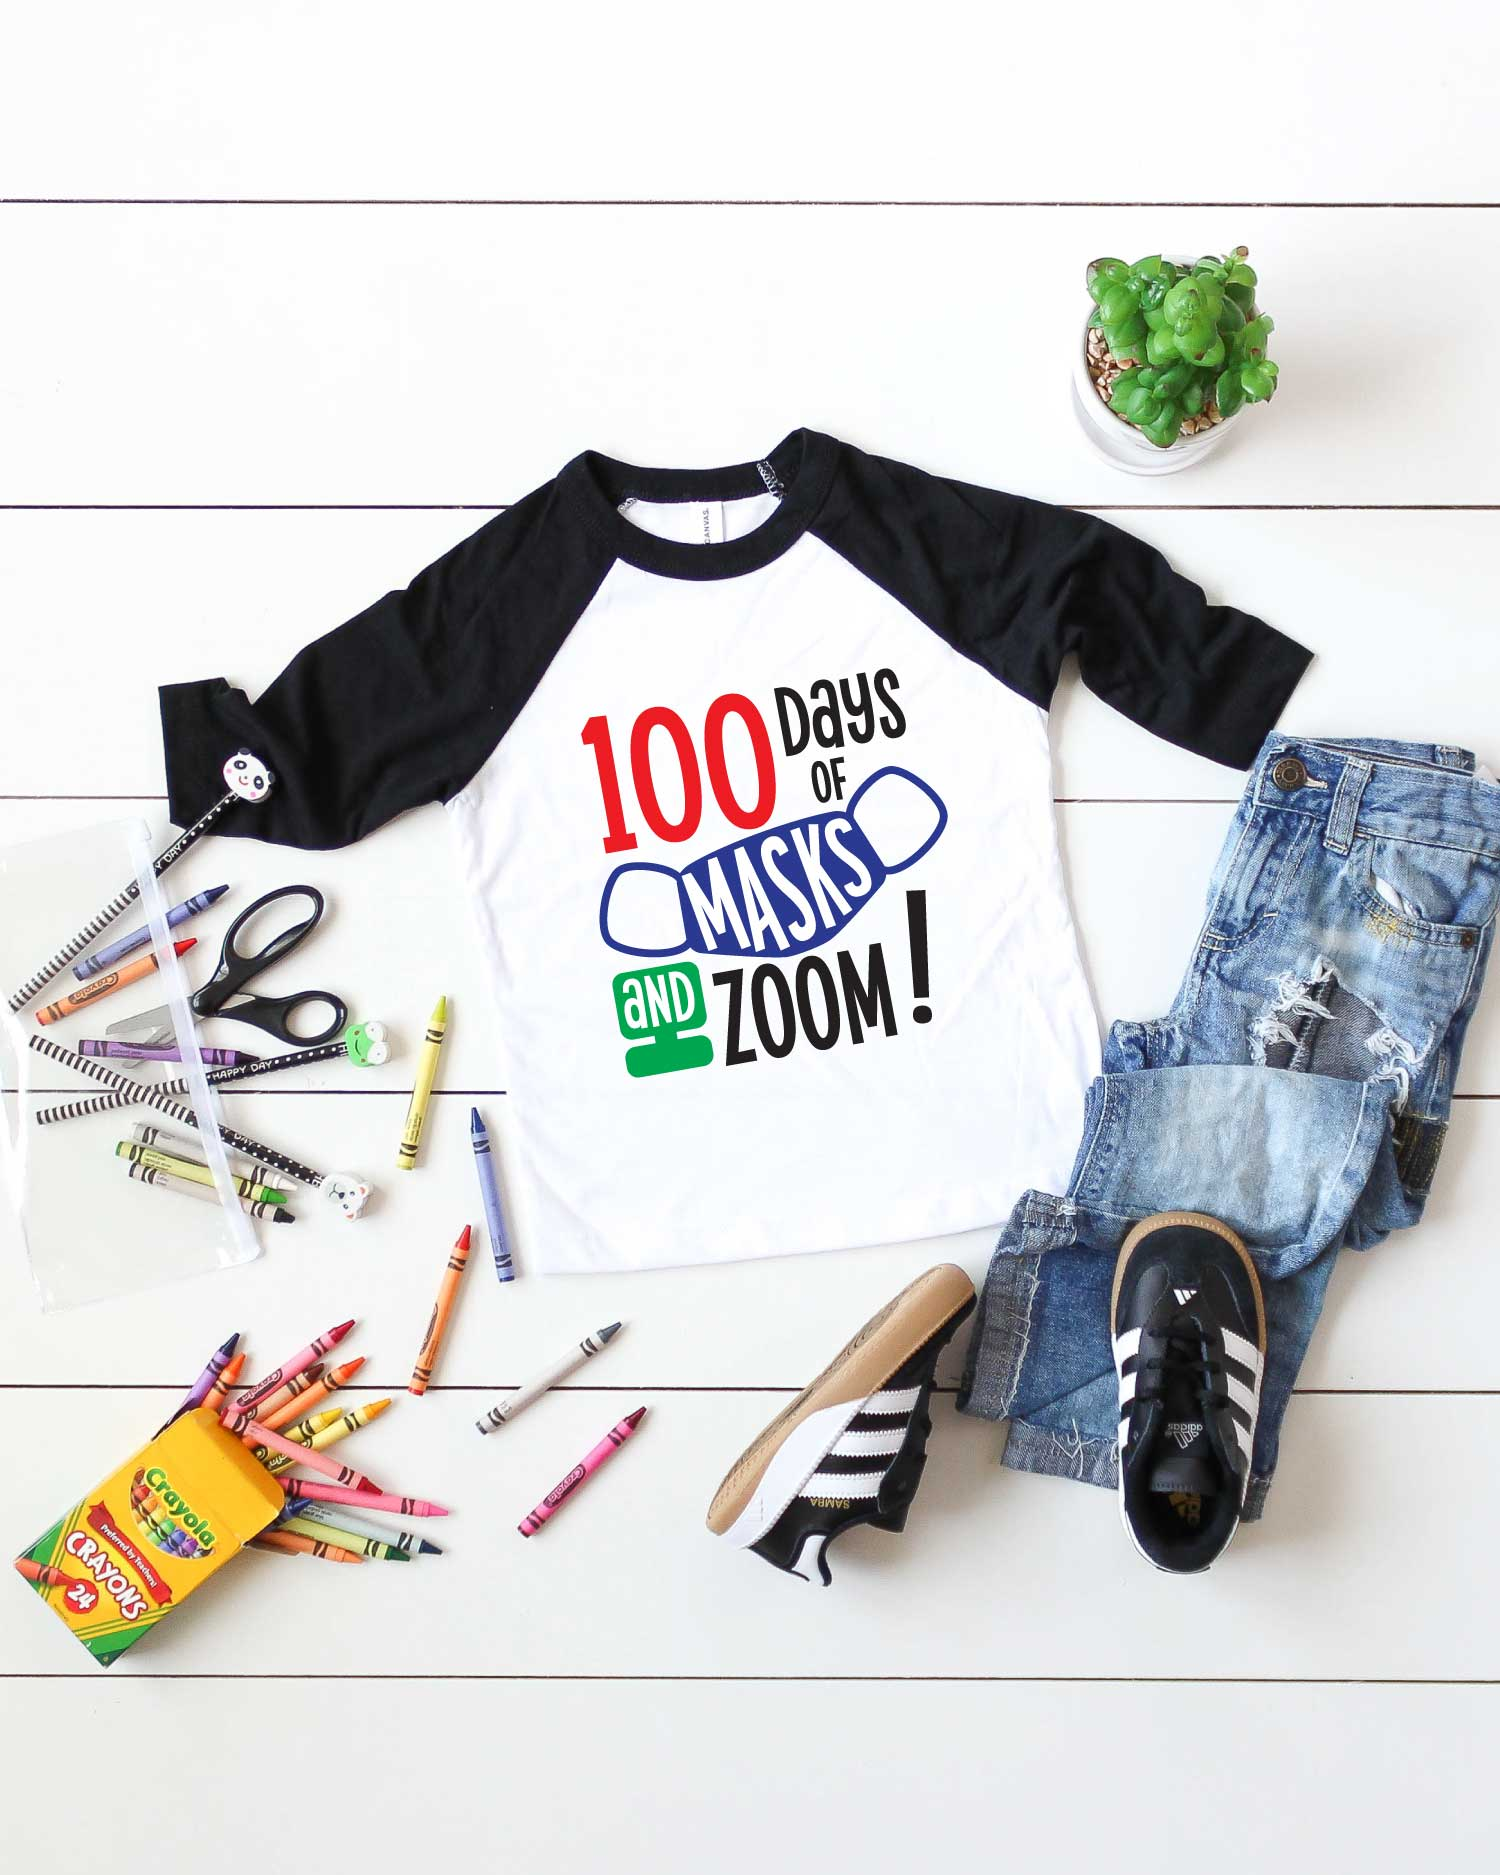 Vertical White background with black and white raglan t-shirt with 100 days of school design and school supplies